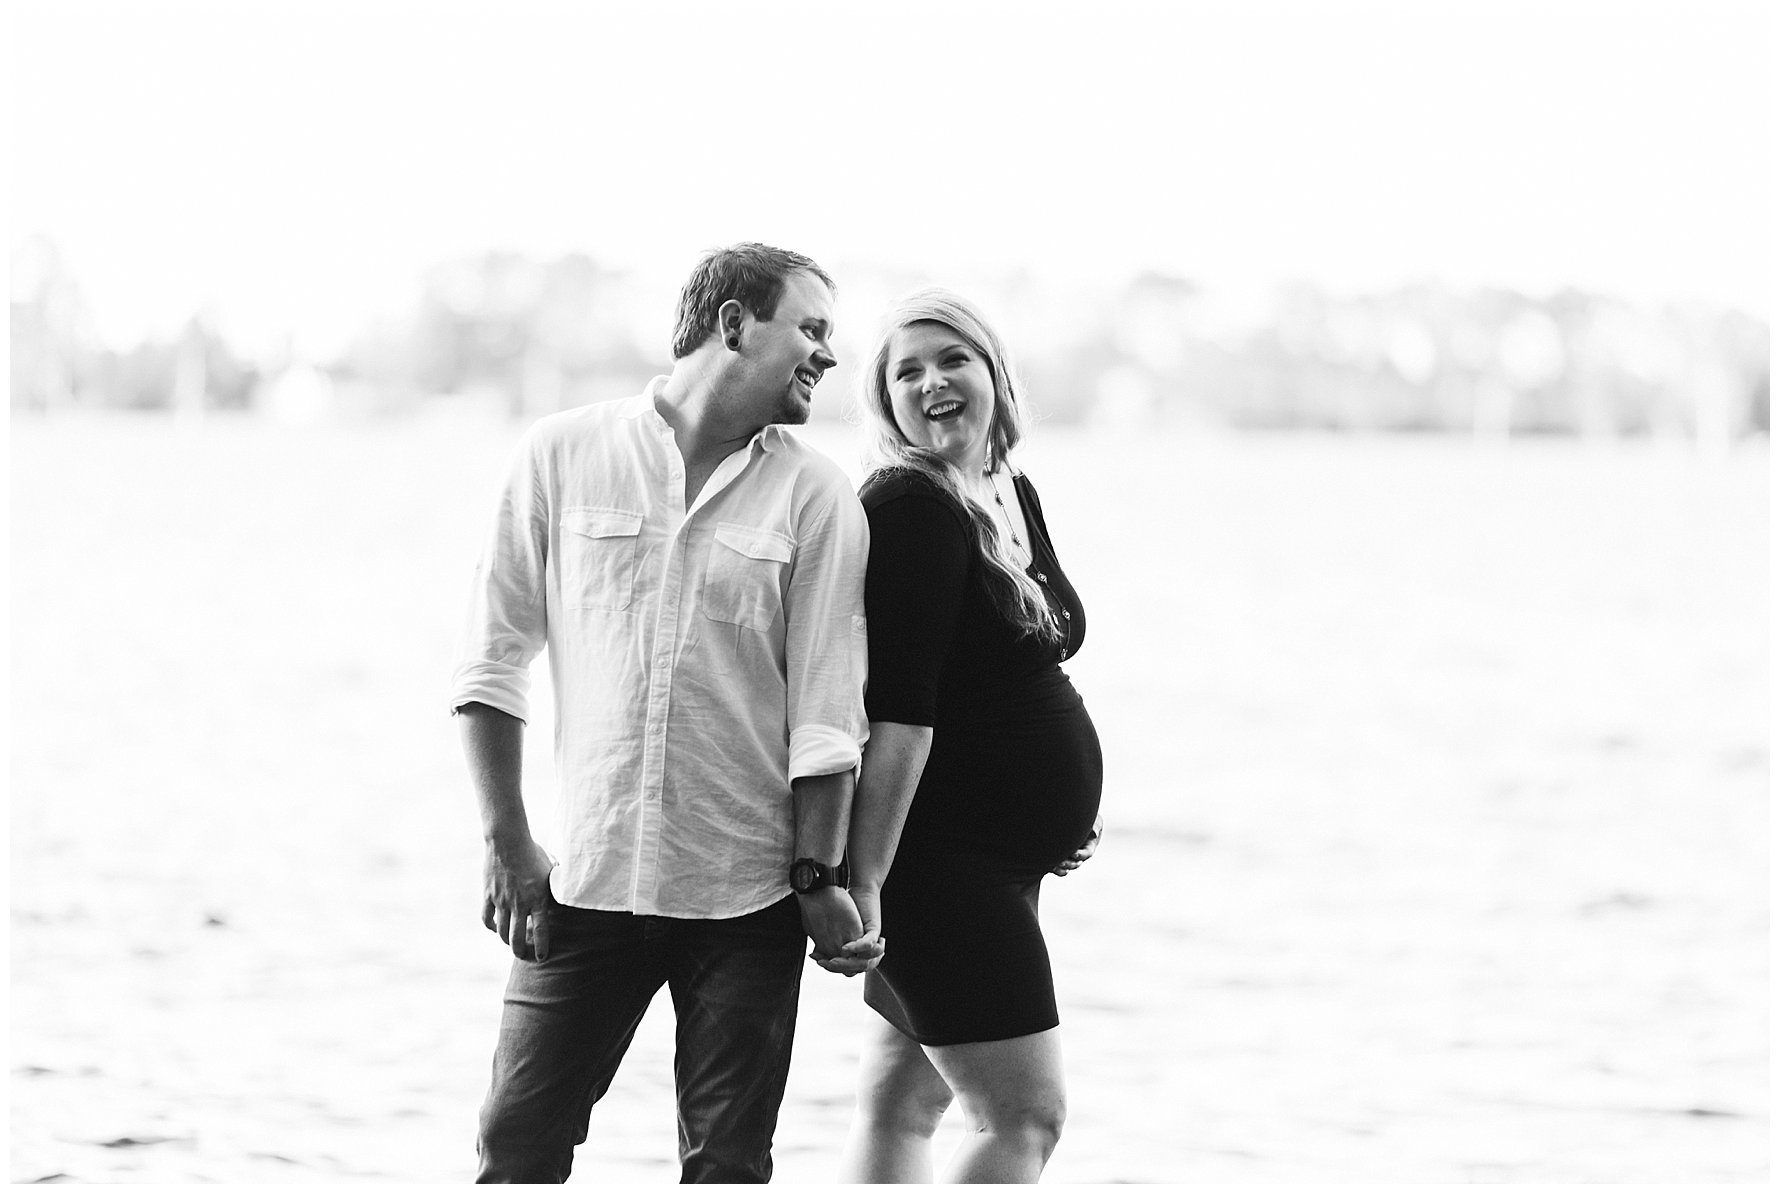 olden Hour Maternity Session by Amanda and Grady Photography